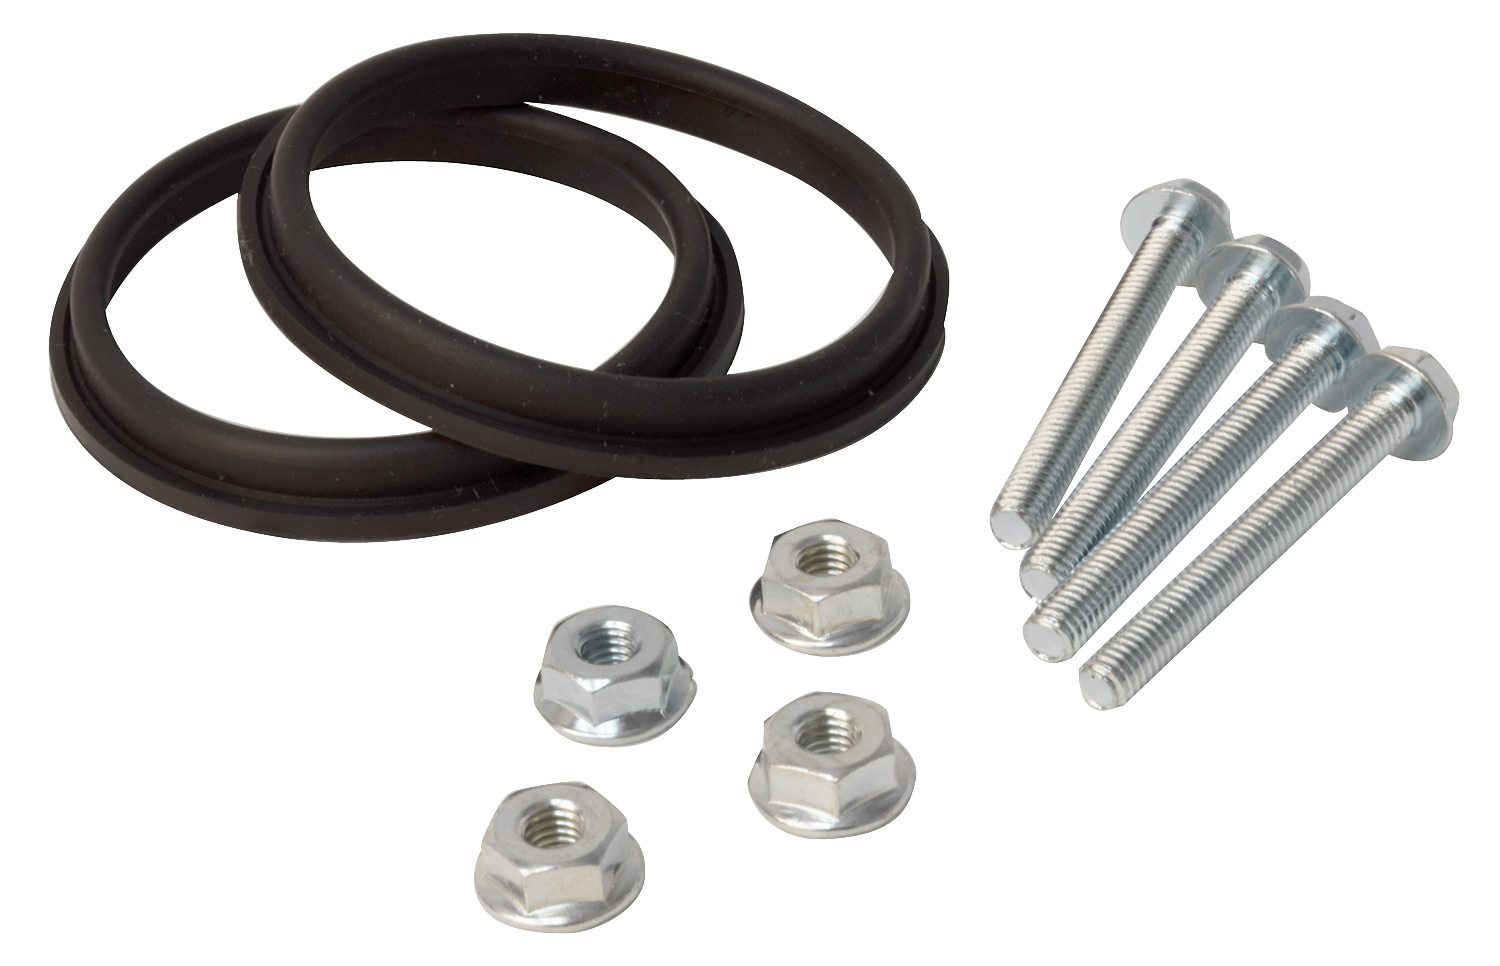 Valterra 1002-9PB 2 Inch Gate Seals and Hardware